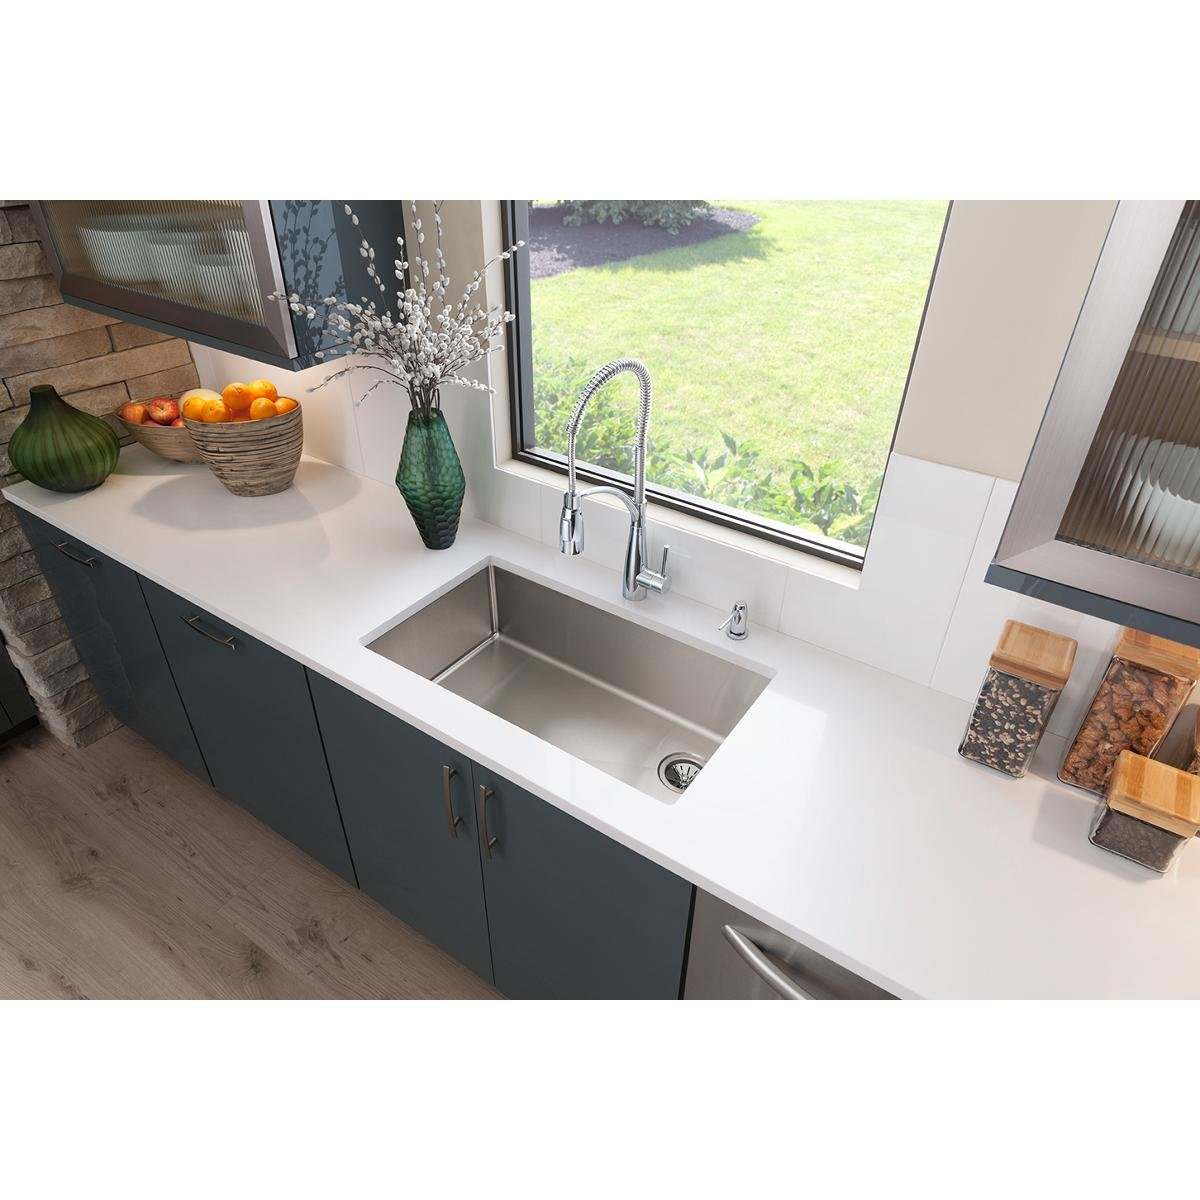 Elkay ECTRU30179RT Crosstown Single Bowl Undermount Stainless Steel Sink